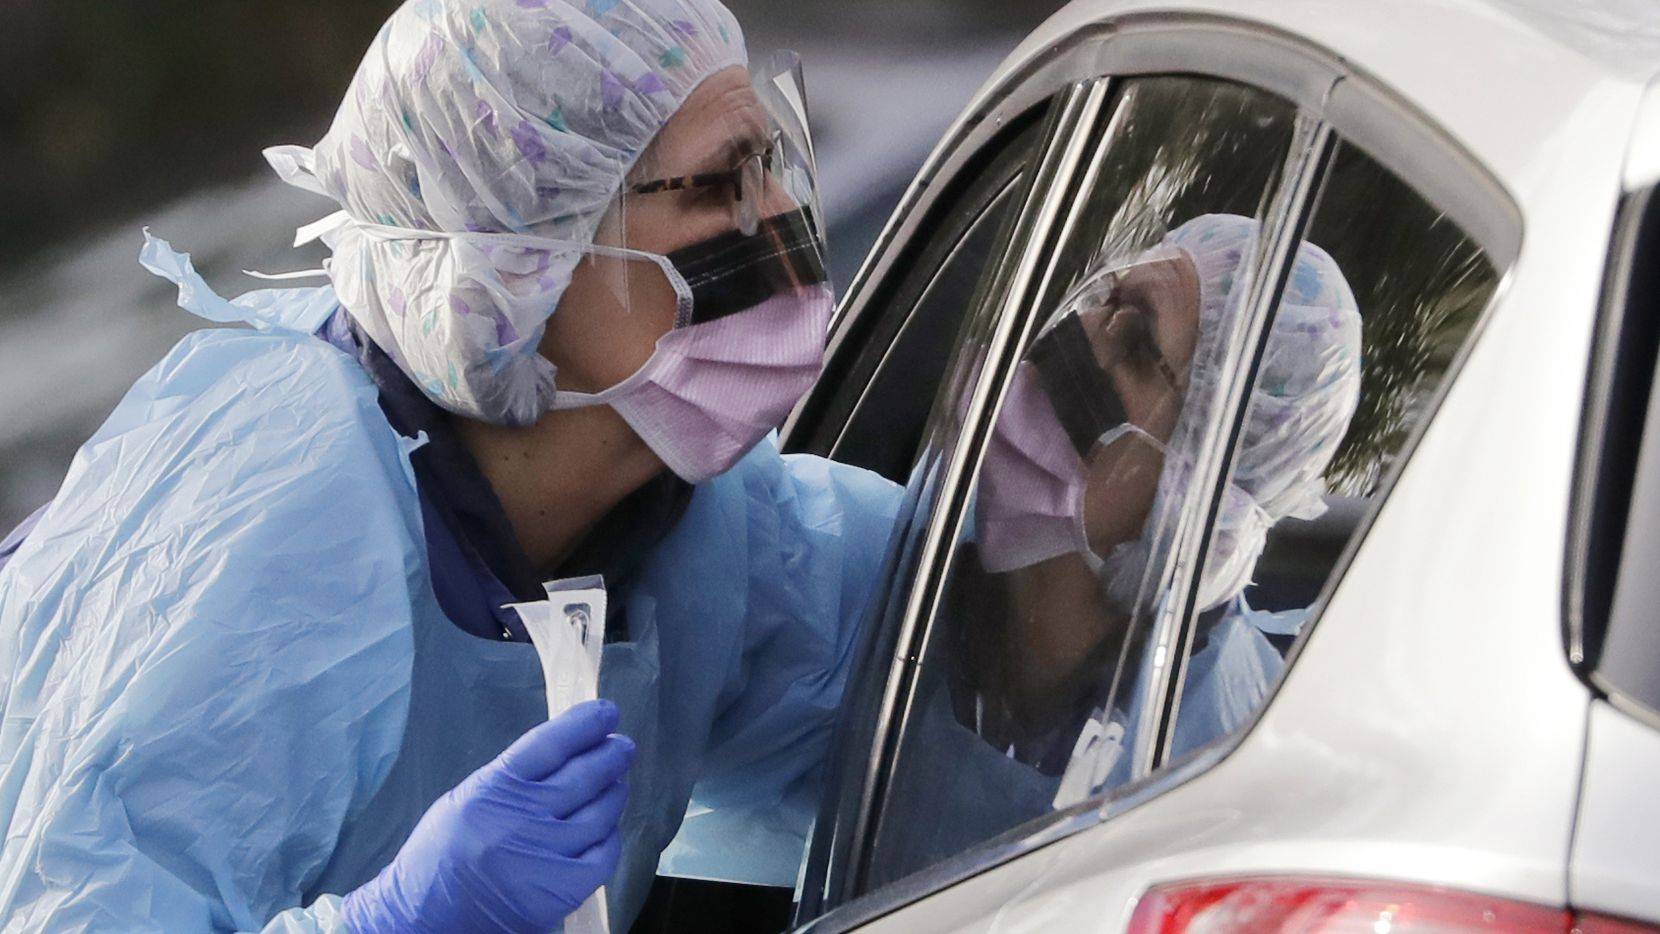 Laurie Kuypers, a registered nurse, reaches into a car to take a nasopharyngeal swab from a patient at a drive-through COVID-19 coronavirus testing station for University of Washington Medicine patients in Seattle, on March 17, 2020.